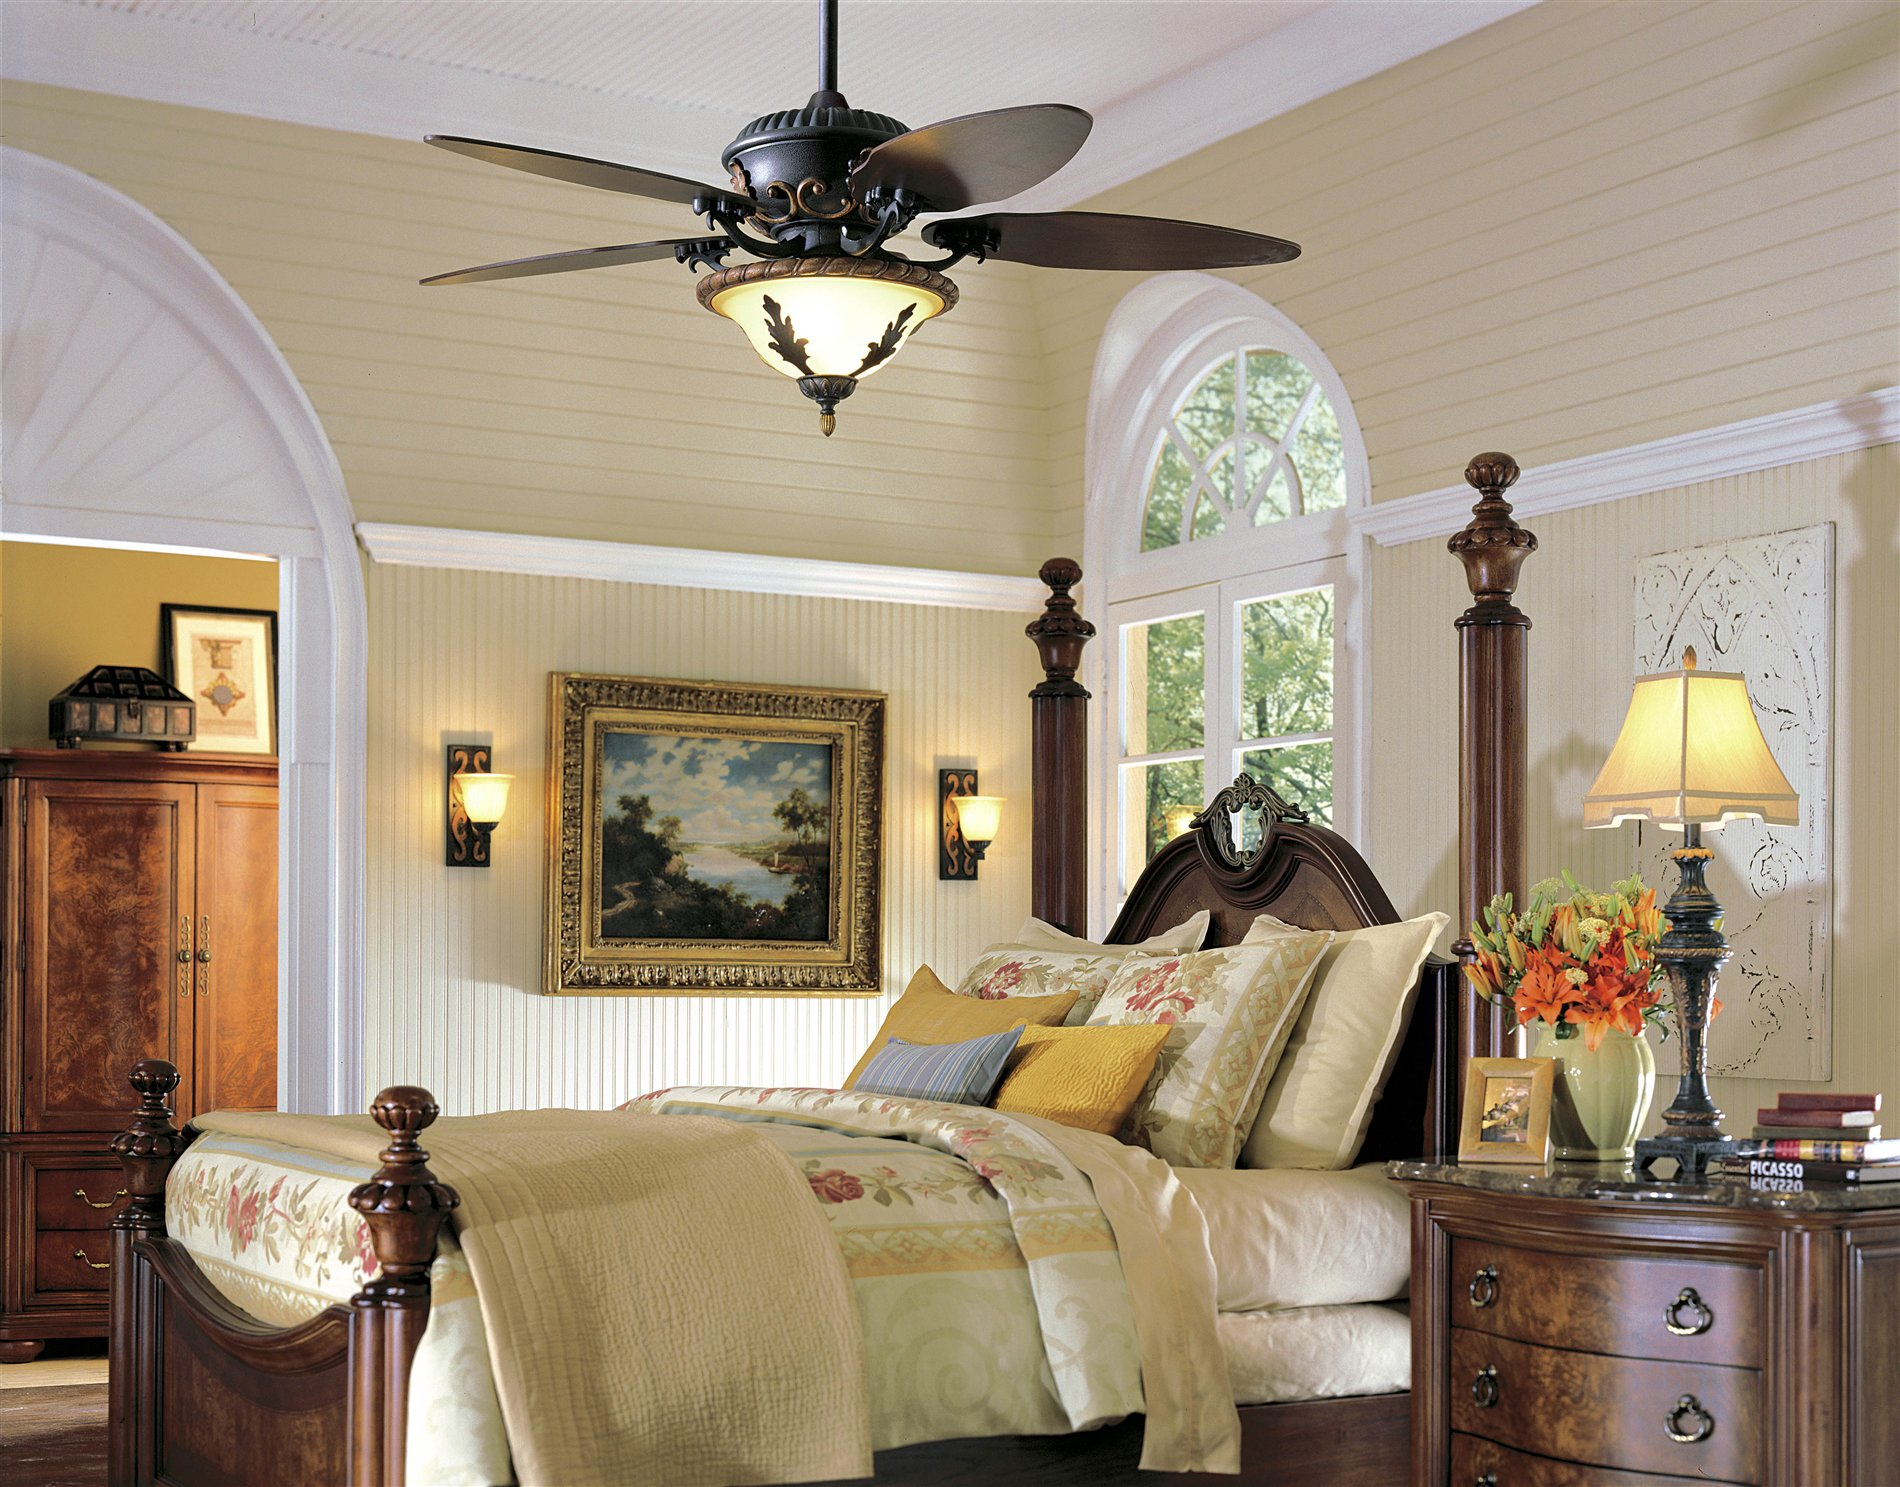 Amazing Beautiful Ceiling Fans with Lights for classic bedroom with wooden furniture bedroom ceiling fans with lights